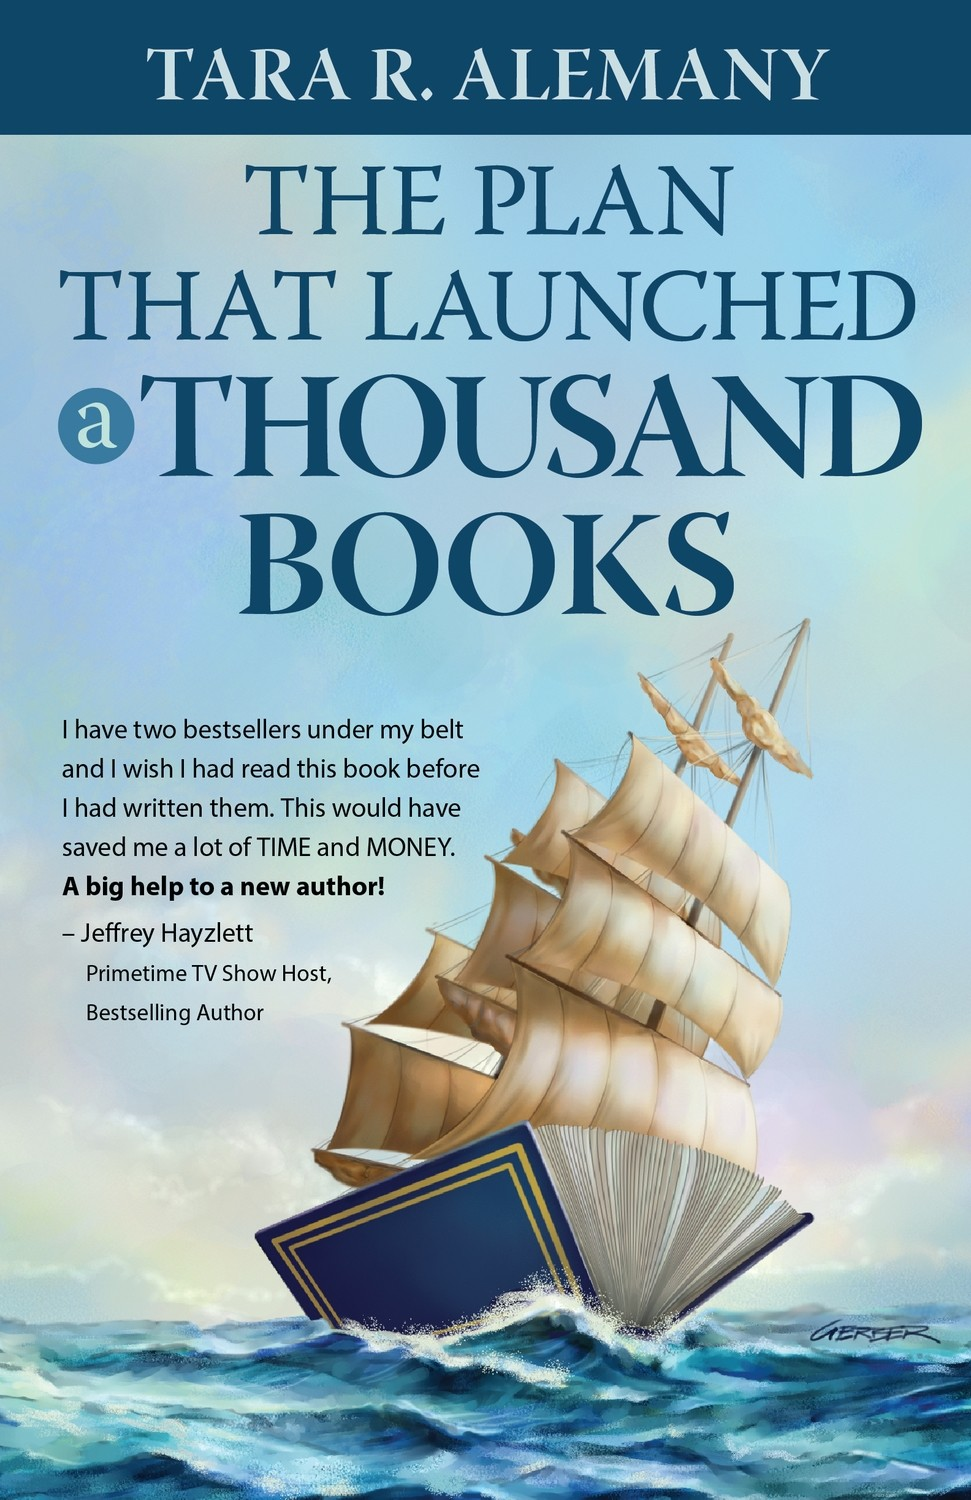 The Plan that Launched a Thousand Books, 2nd ed. (Kindle)